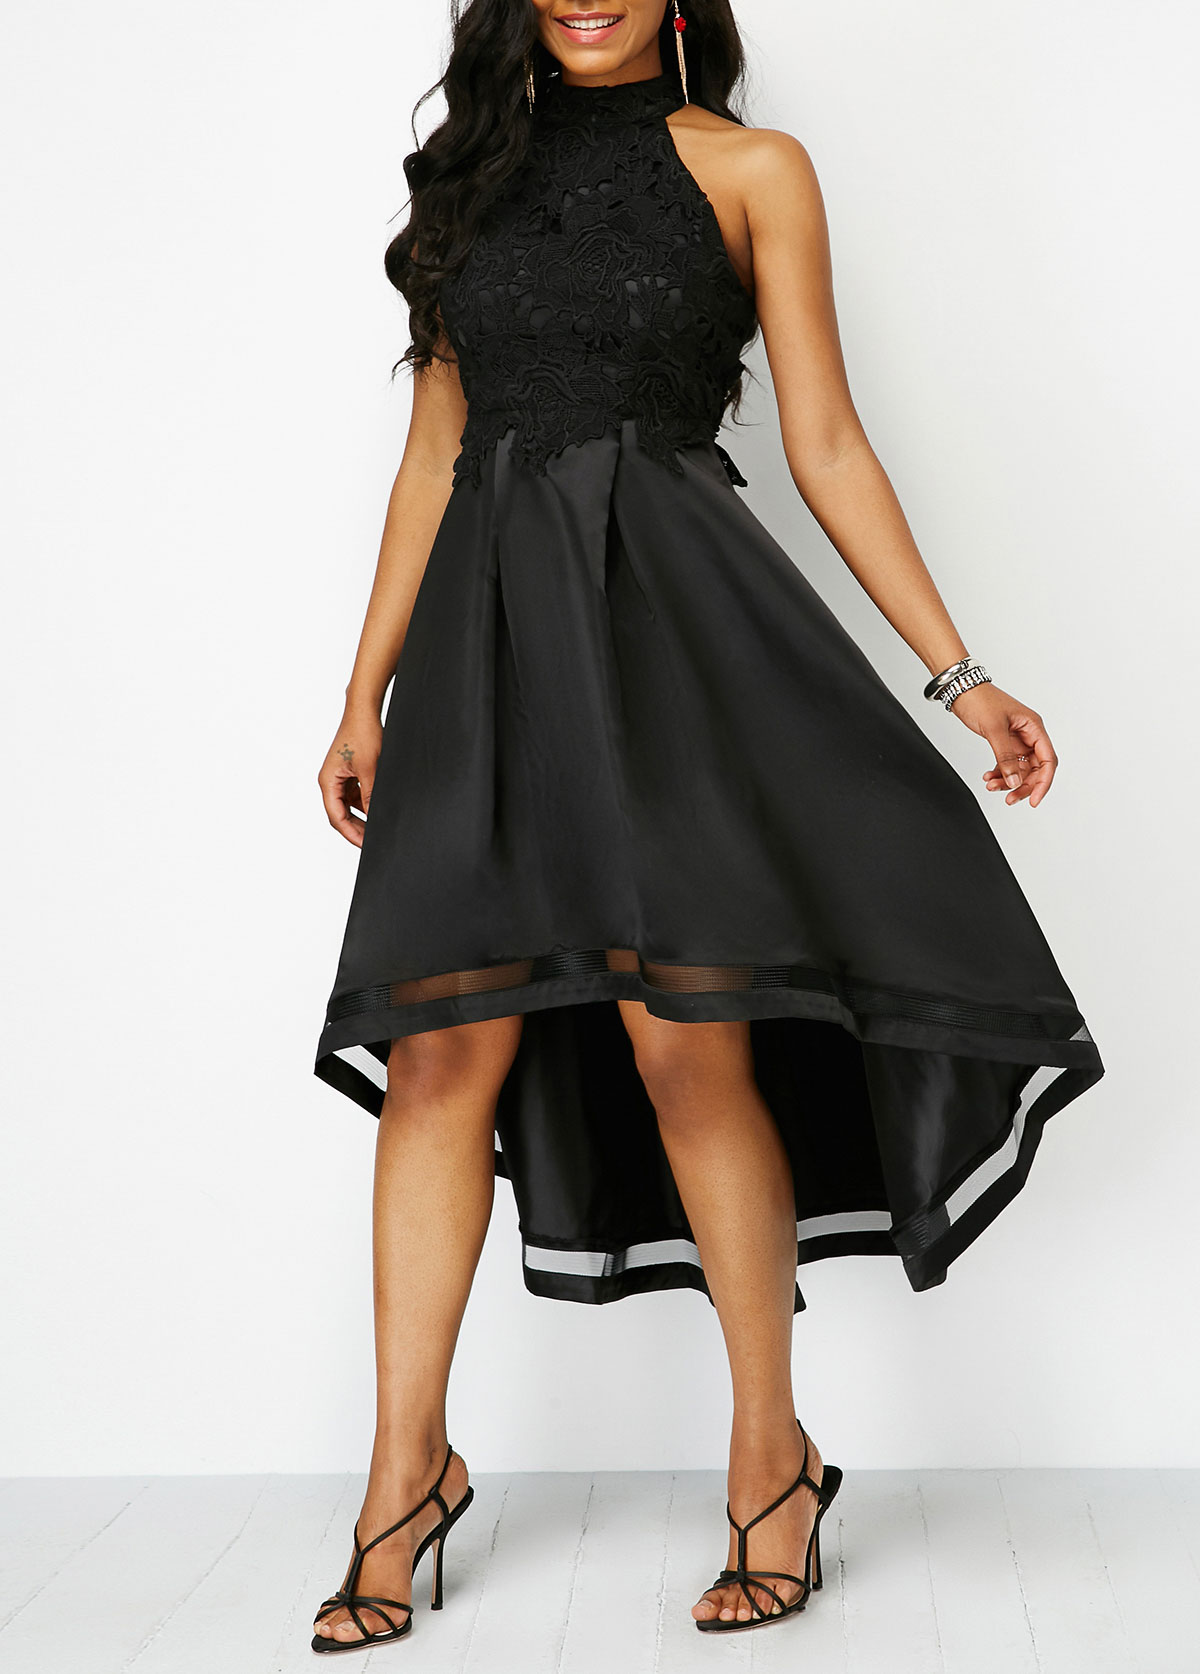 Black Lace Panel Sleeveless High Low Dress. AddThis Sharing Buttons. Share  to Facebook Share to Pinterest 37b24c997